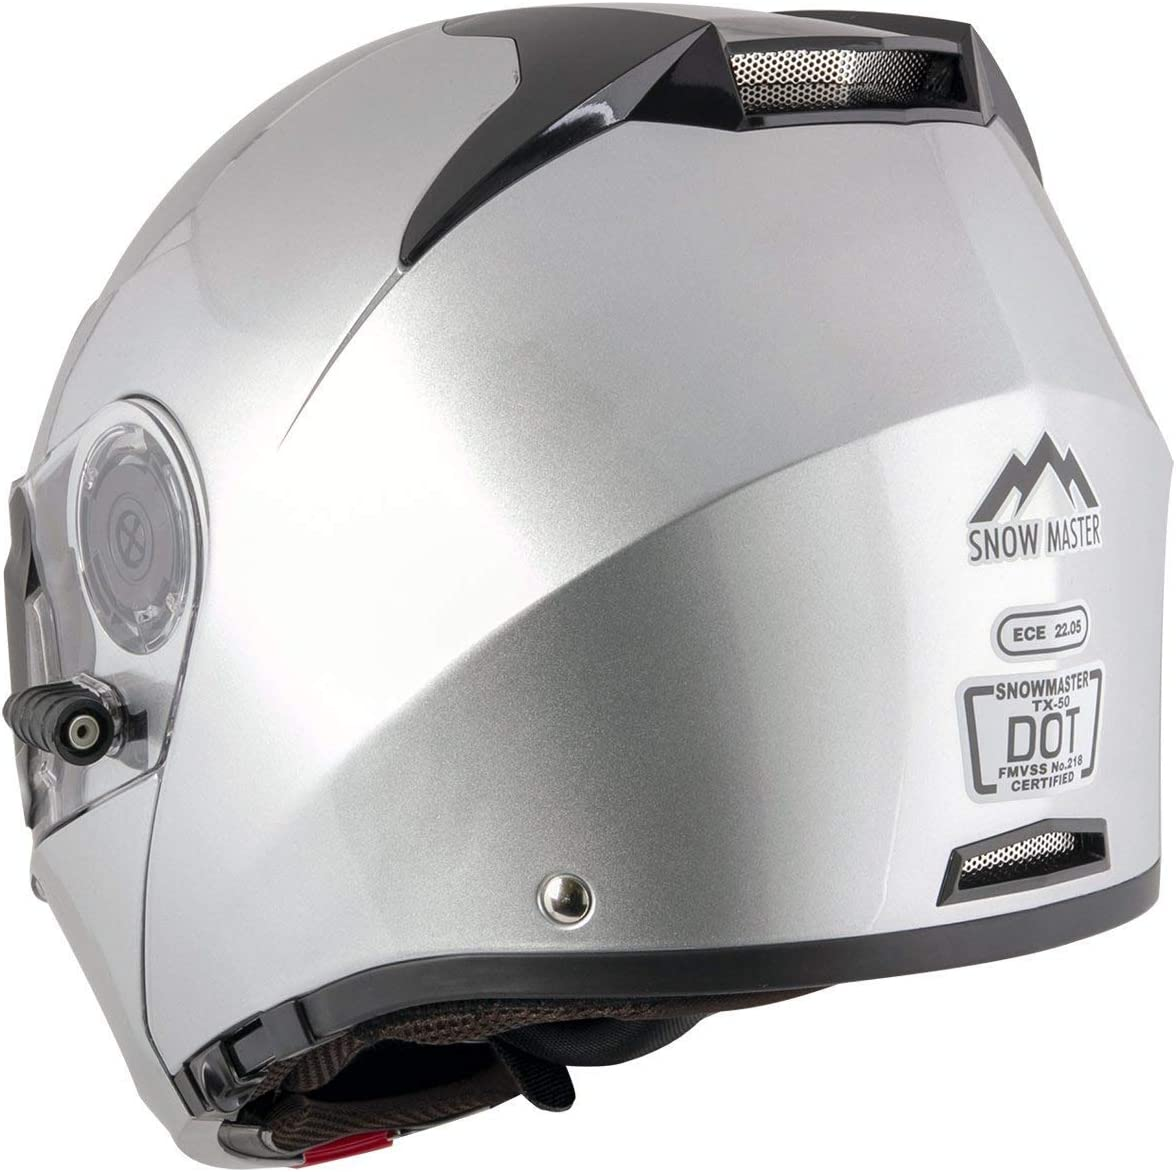 2X-Large Snow Master Helmets TX-50-Silver Snow Master TX-50 Silver Modular Dual Use Snowmobile and Street Helmet Silver